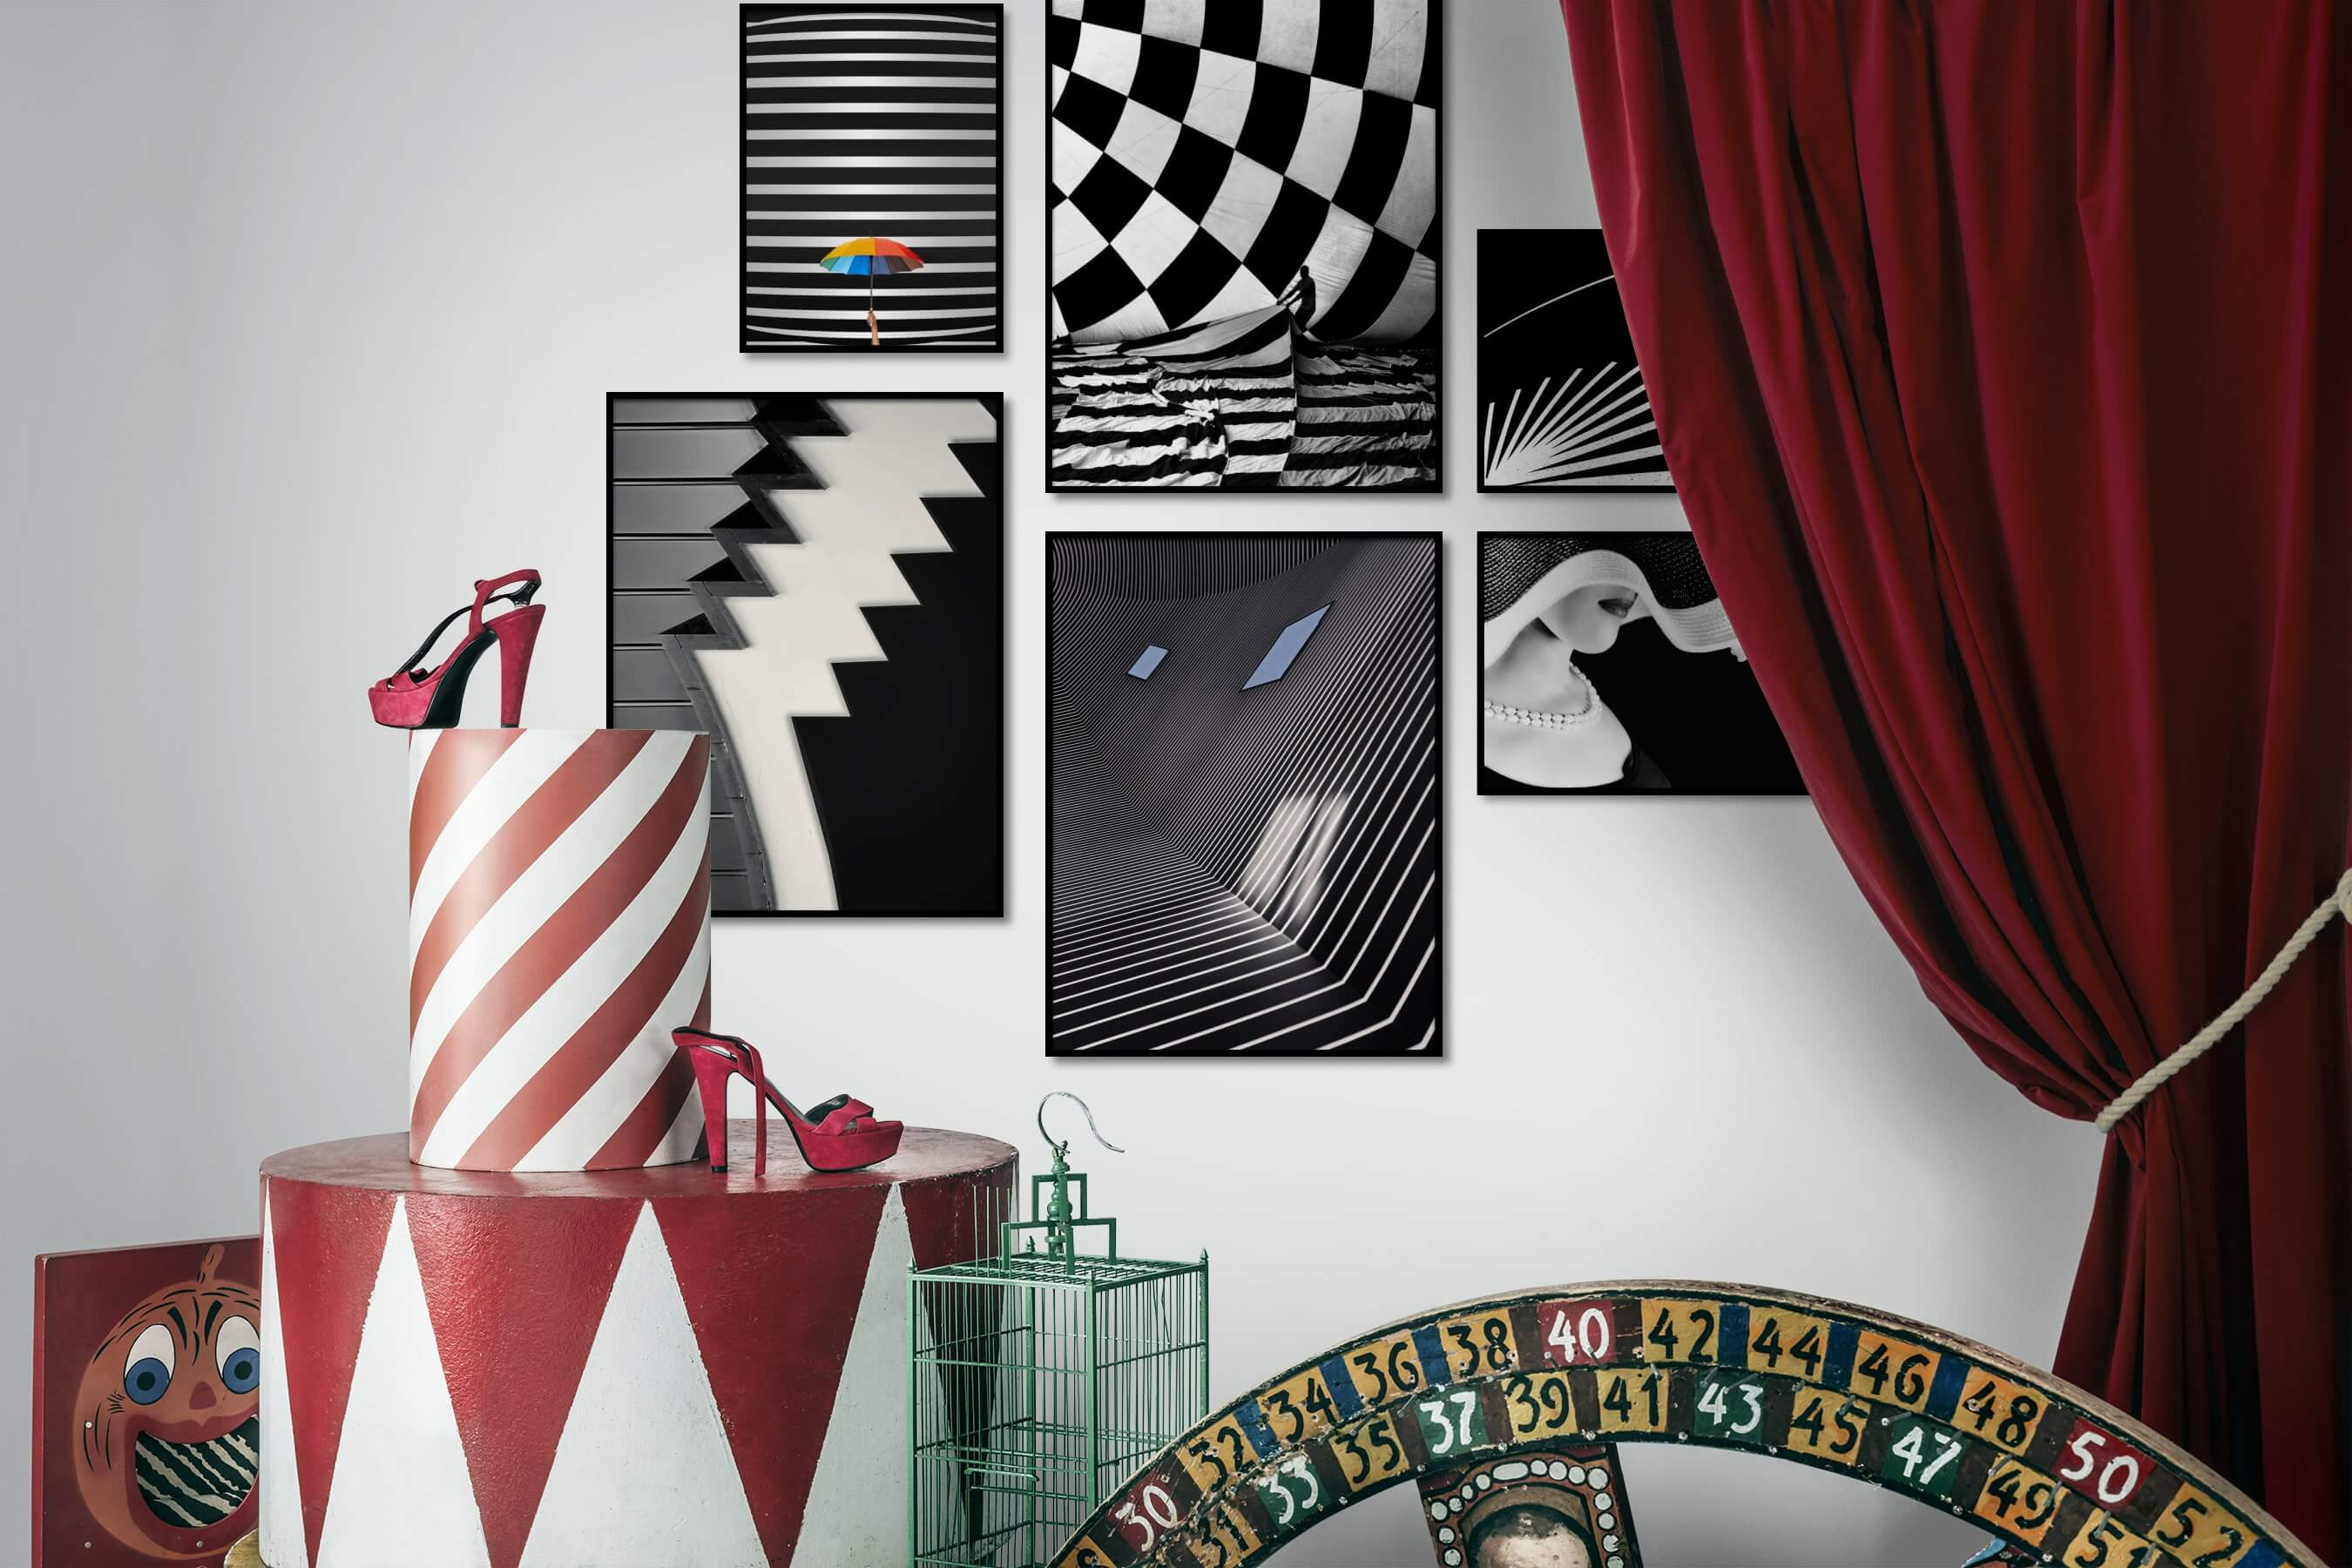 Gallery wall idea with six framed pictures arranged on a wall depicting For the Maximalist, Black & White, For the Moderate, For the Minimalist, Fashion & Beauty, and Vintage